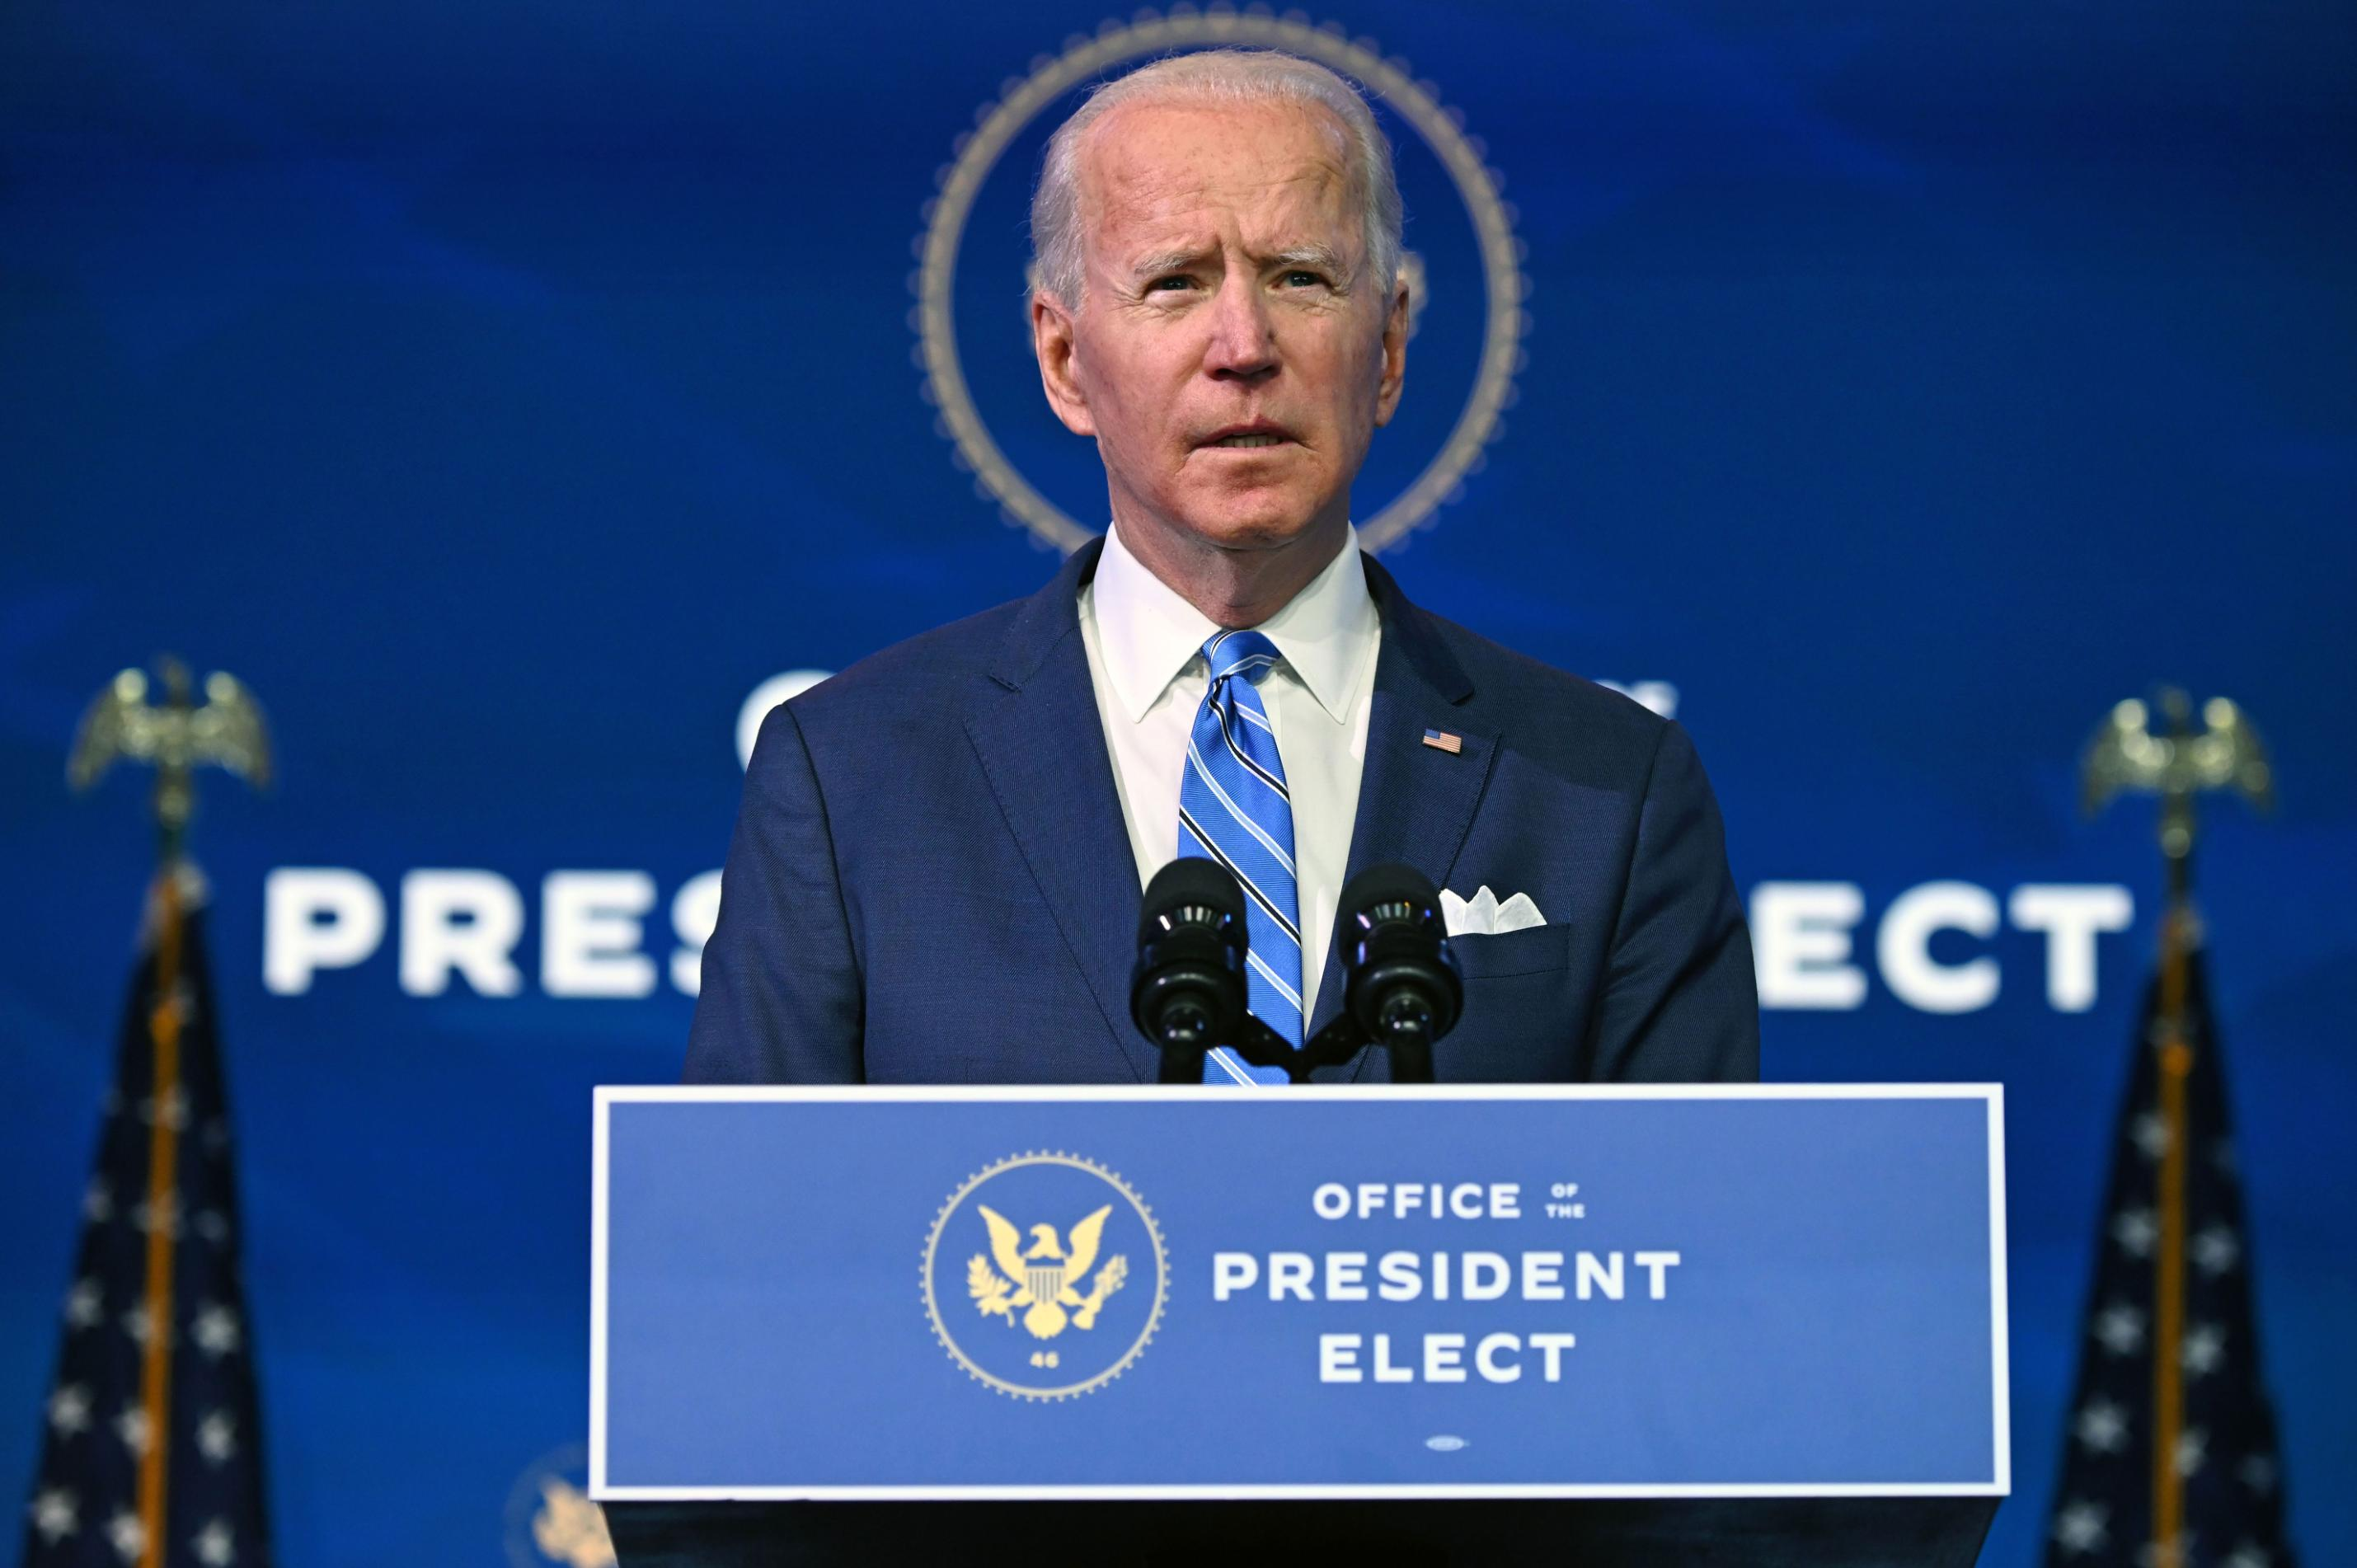 Biden to sign executive orders rejoining Paris climate accord and rescinding travel ban on first day